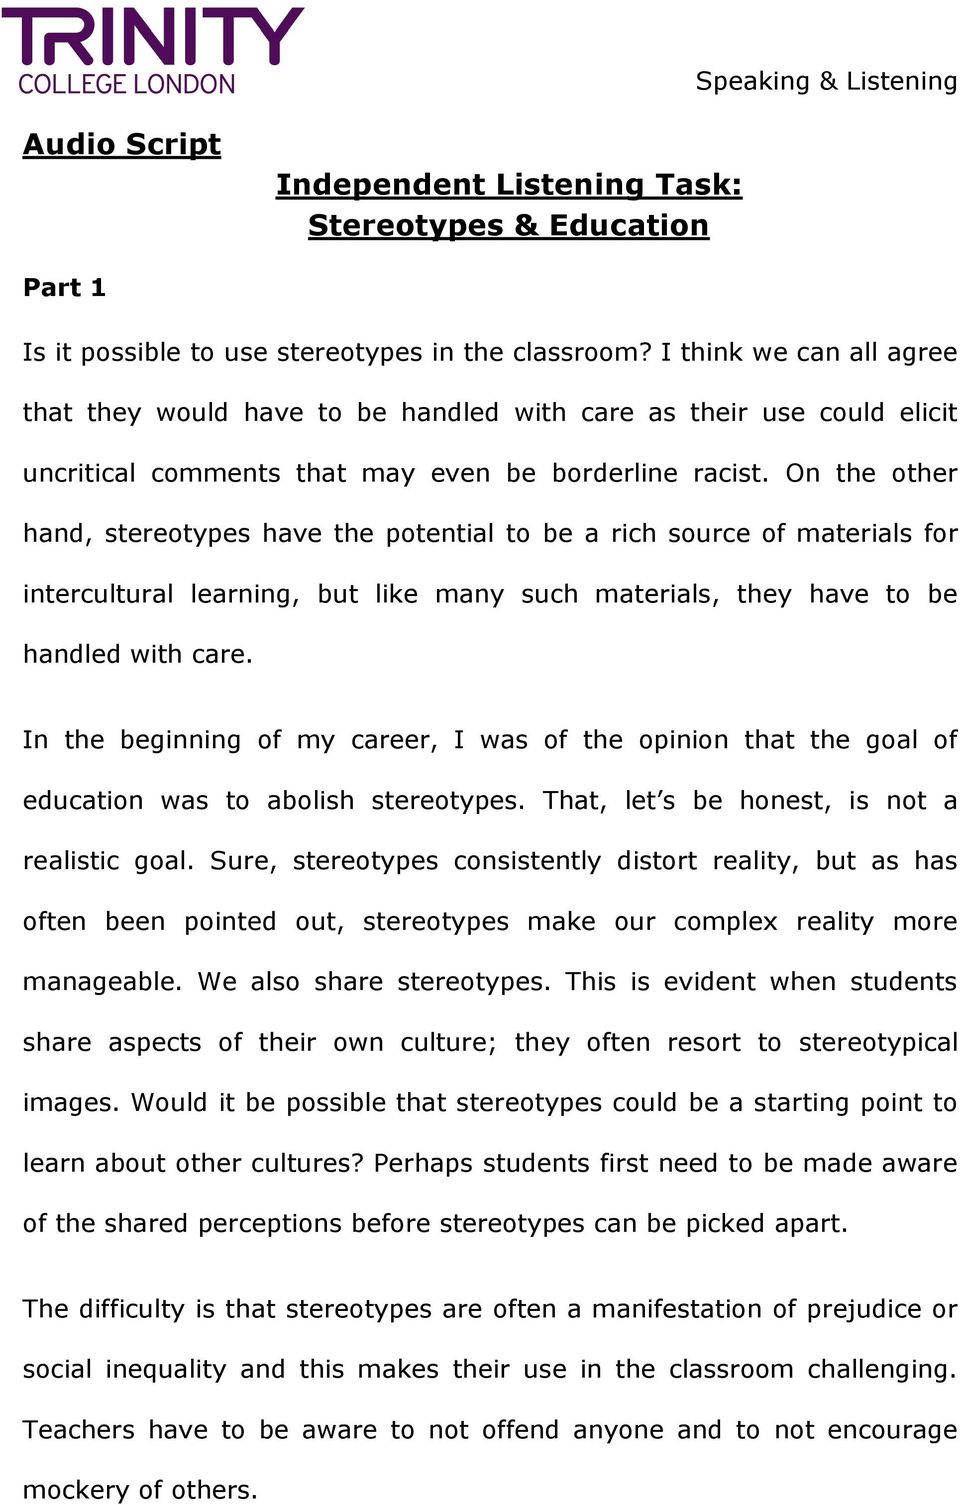 On the other hand, stereotypes have the potential to be a rich source of materials for intercultural learning, but like many such materials, they have to be handled with care.